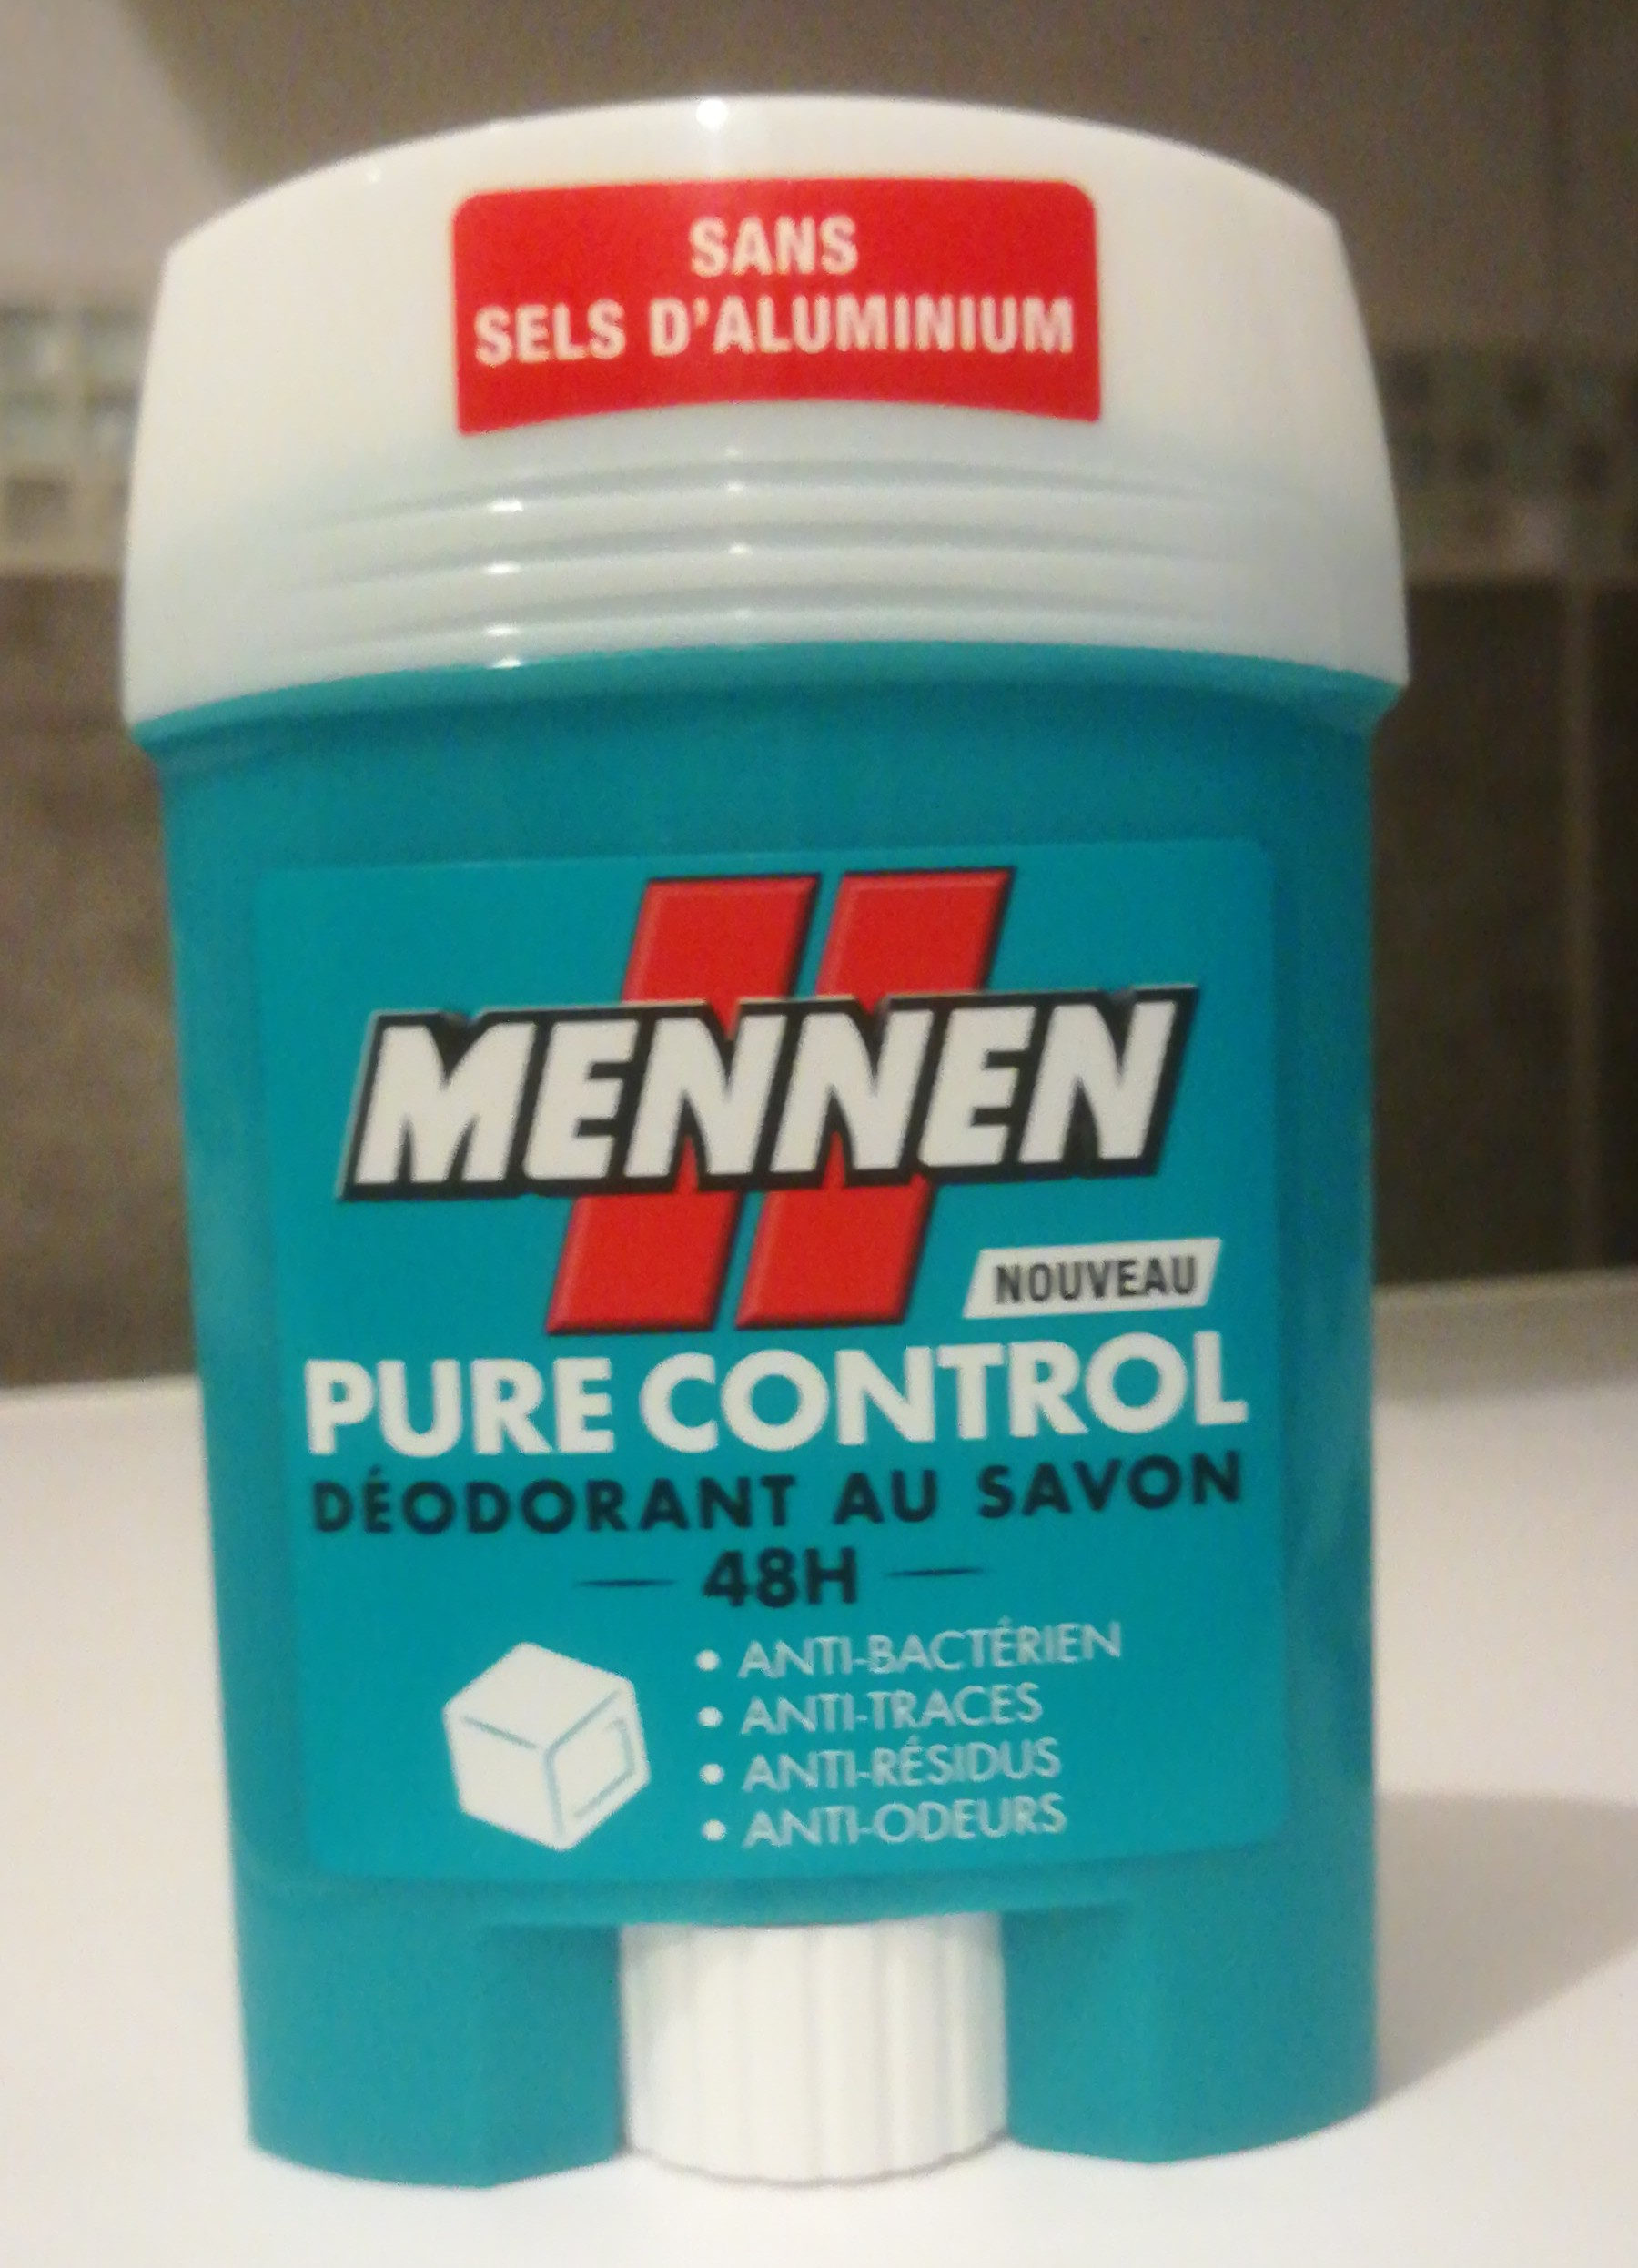 Mennen Pure Control - Product - fr